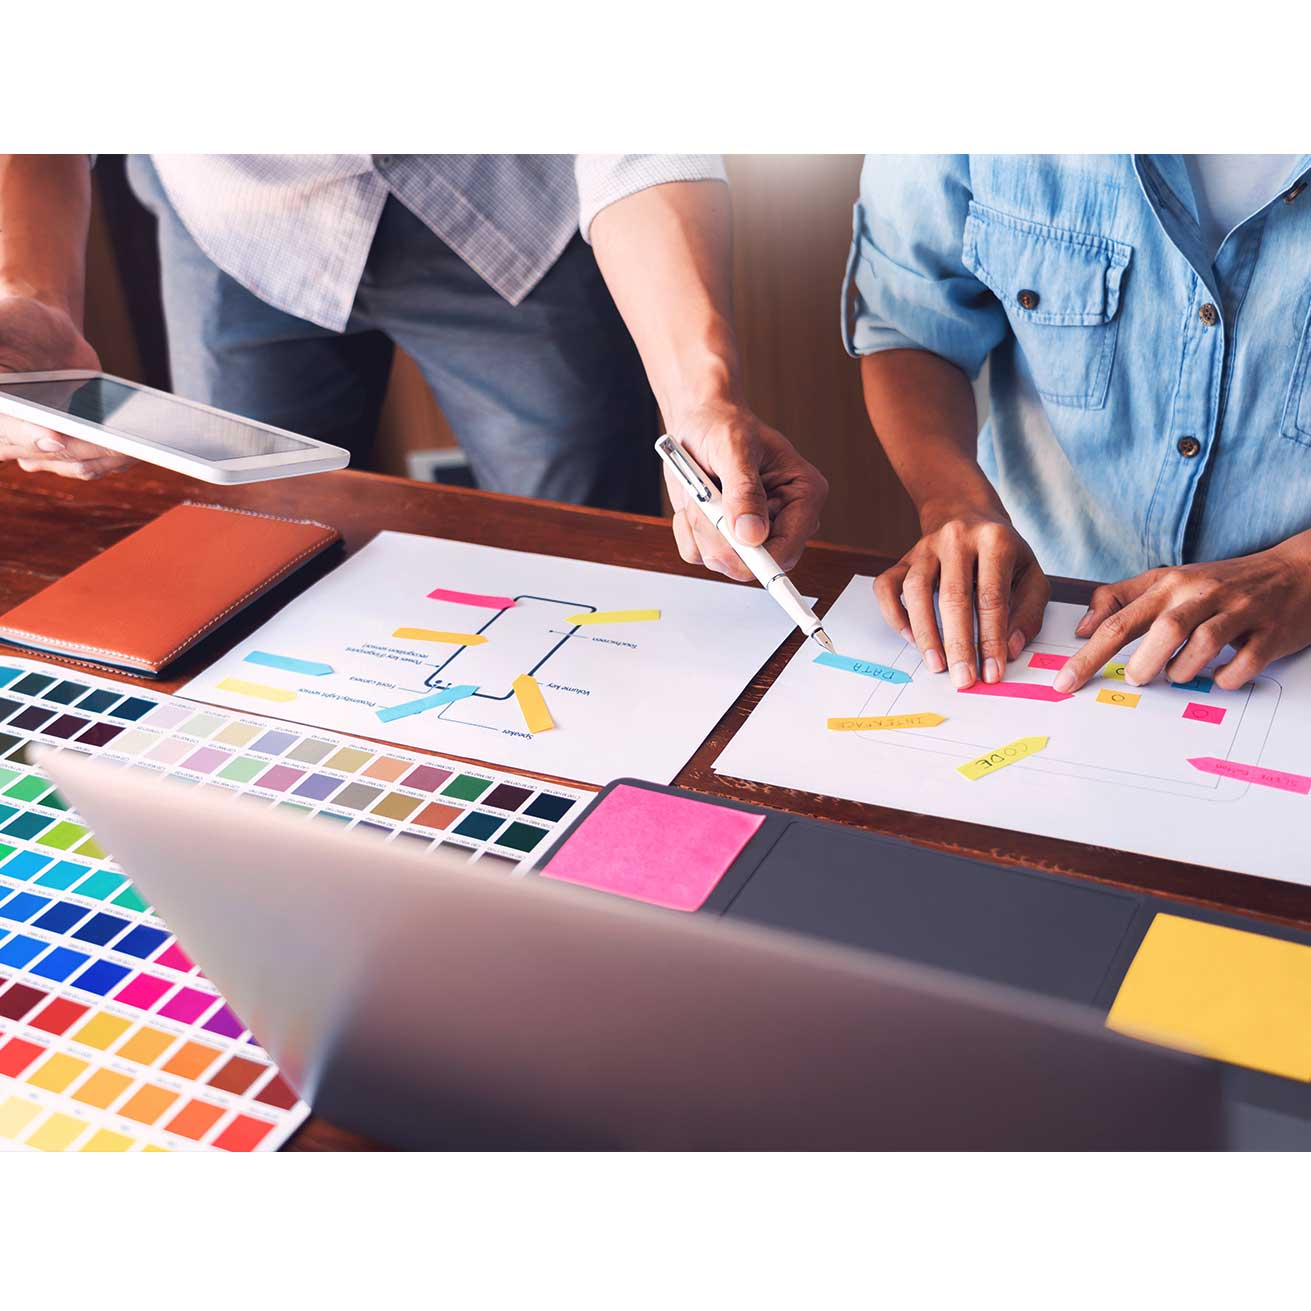 Website Graphic Design Services in Mumbai